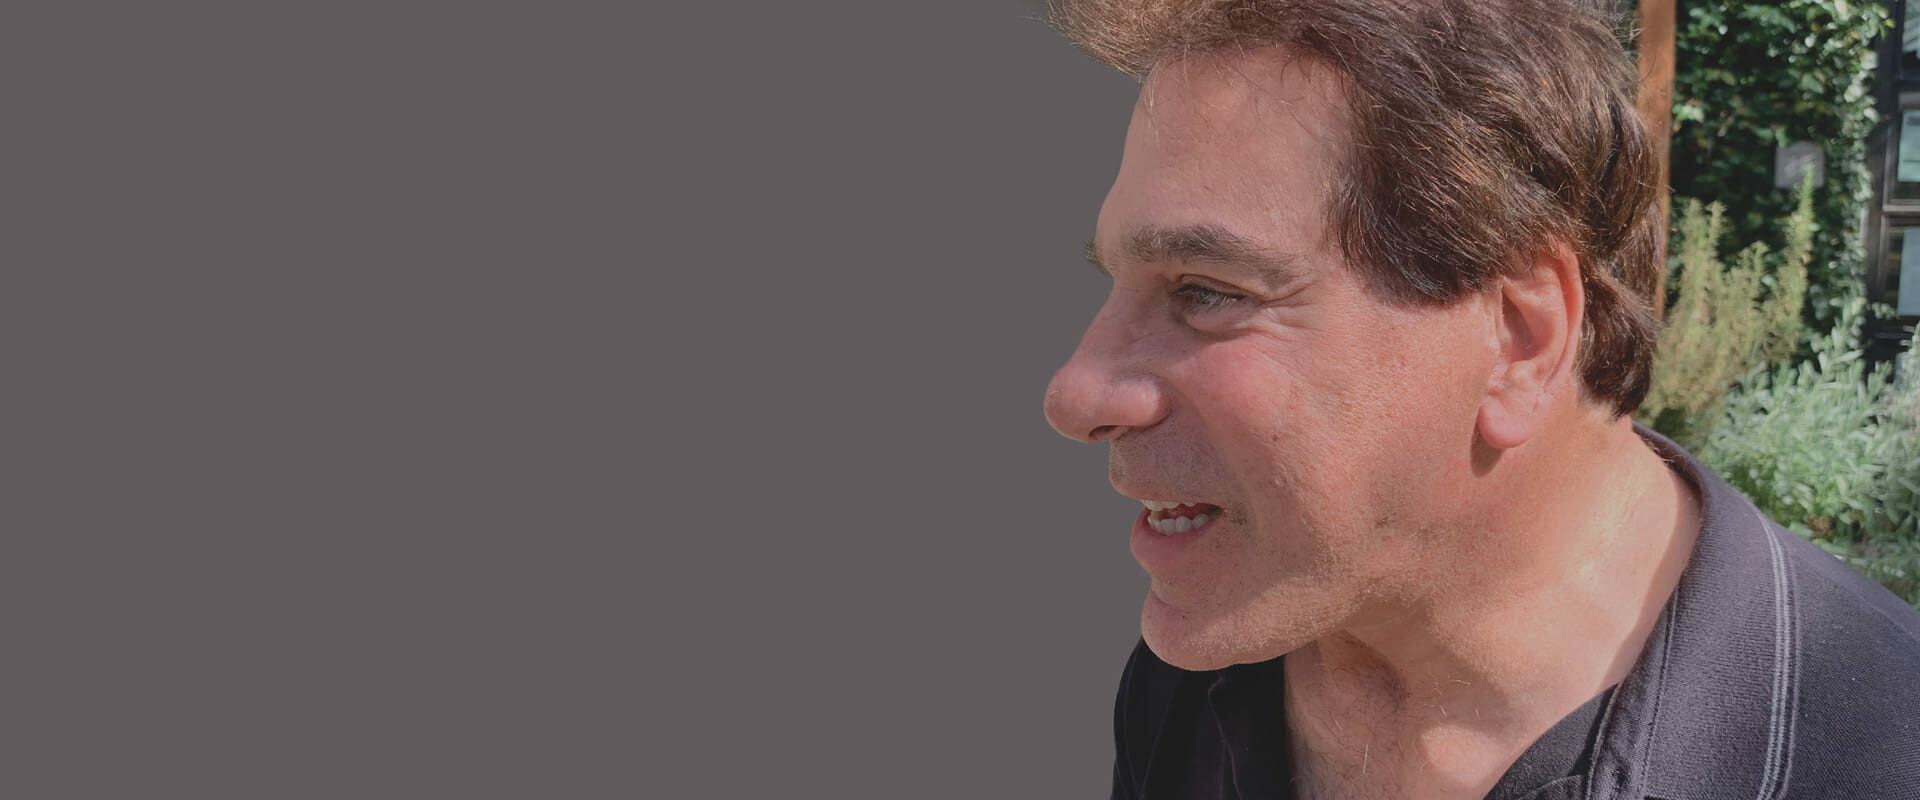 AT335-Main_Images-F1-min(Photograph provided by Lou Ferrigno and Cochlear Americas)